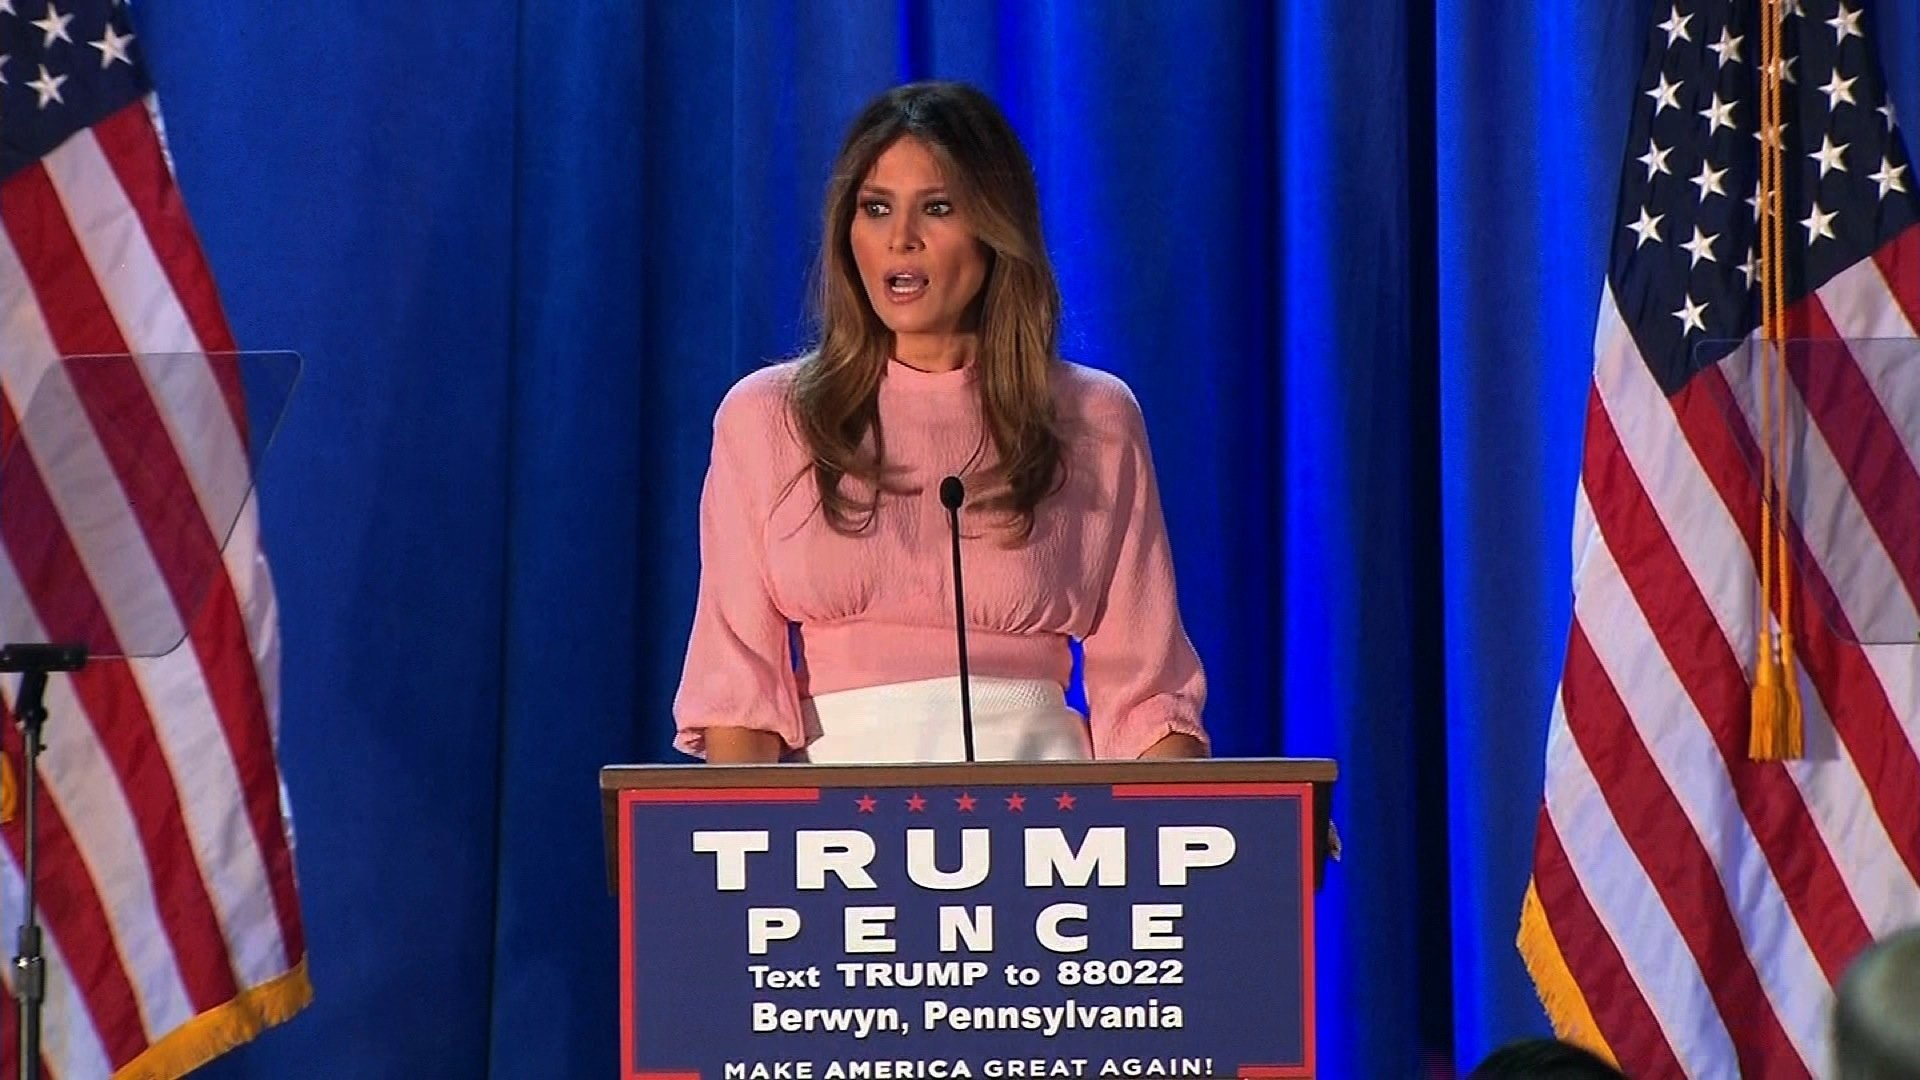 Melania Trump Gives First Speech Since Republican National Convention in July